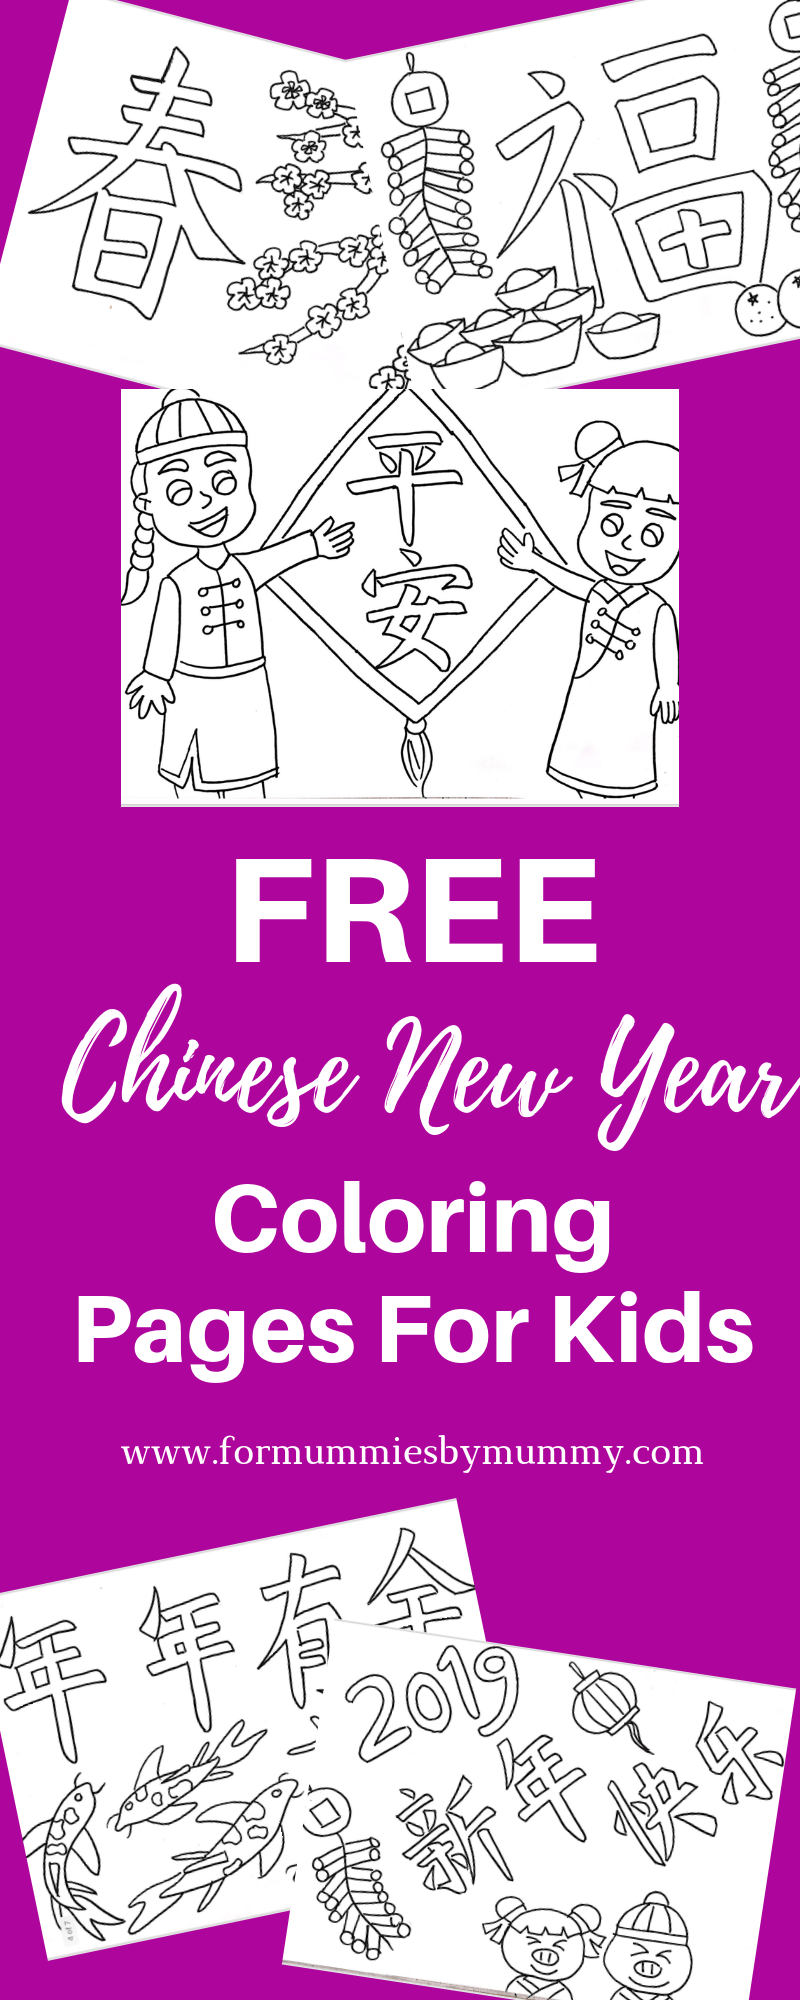 Free chinese new year coloring pages for kids. #freeprintables #coloringpages #kidscraft #cny #printables #toddleractivities